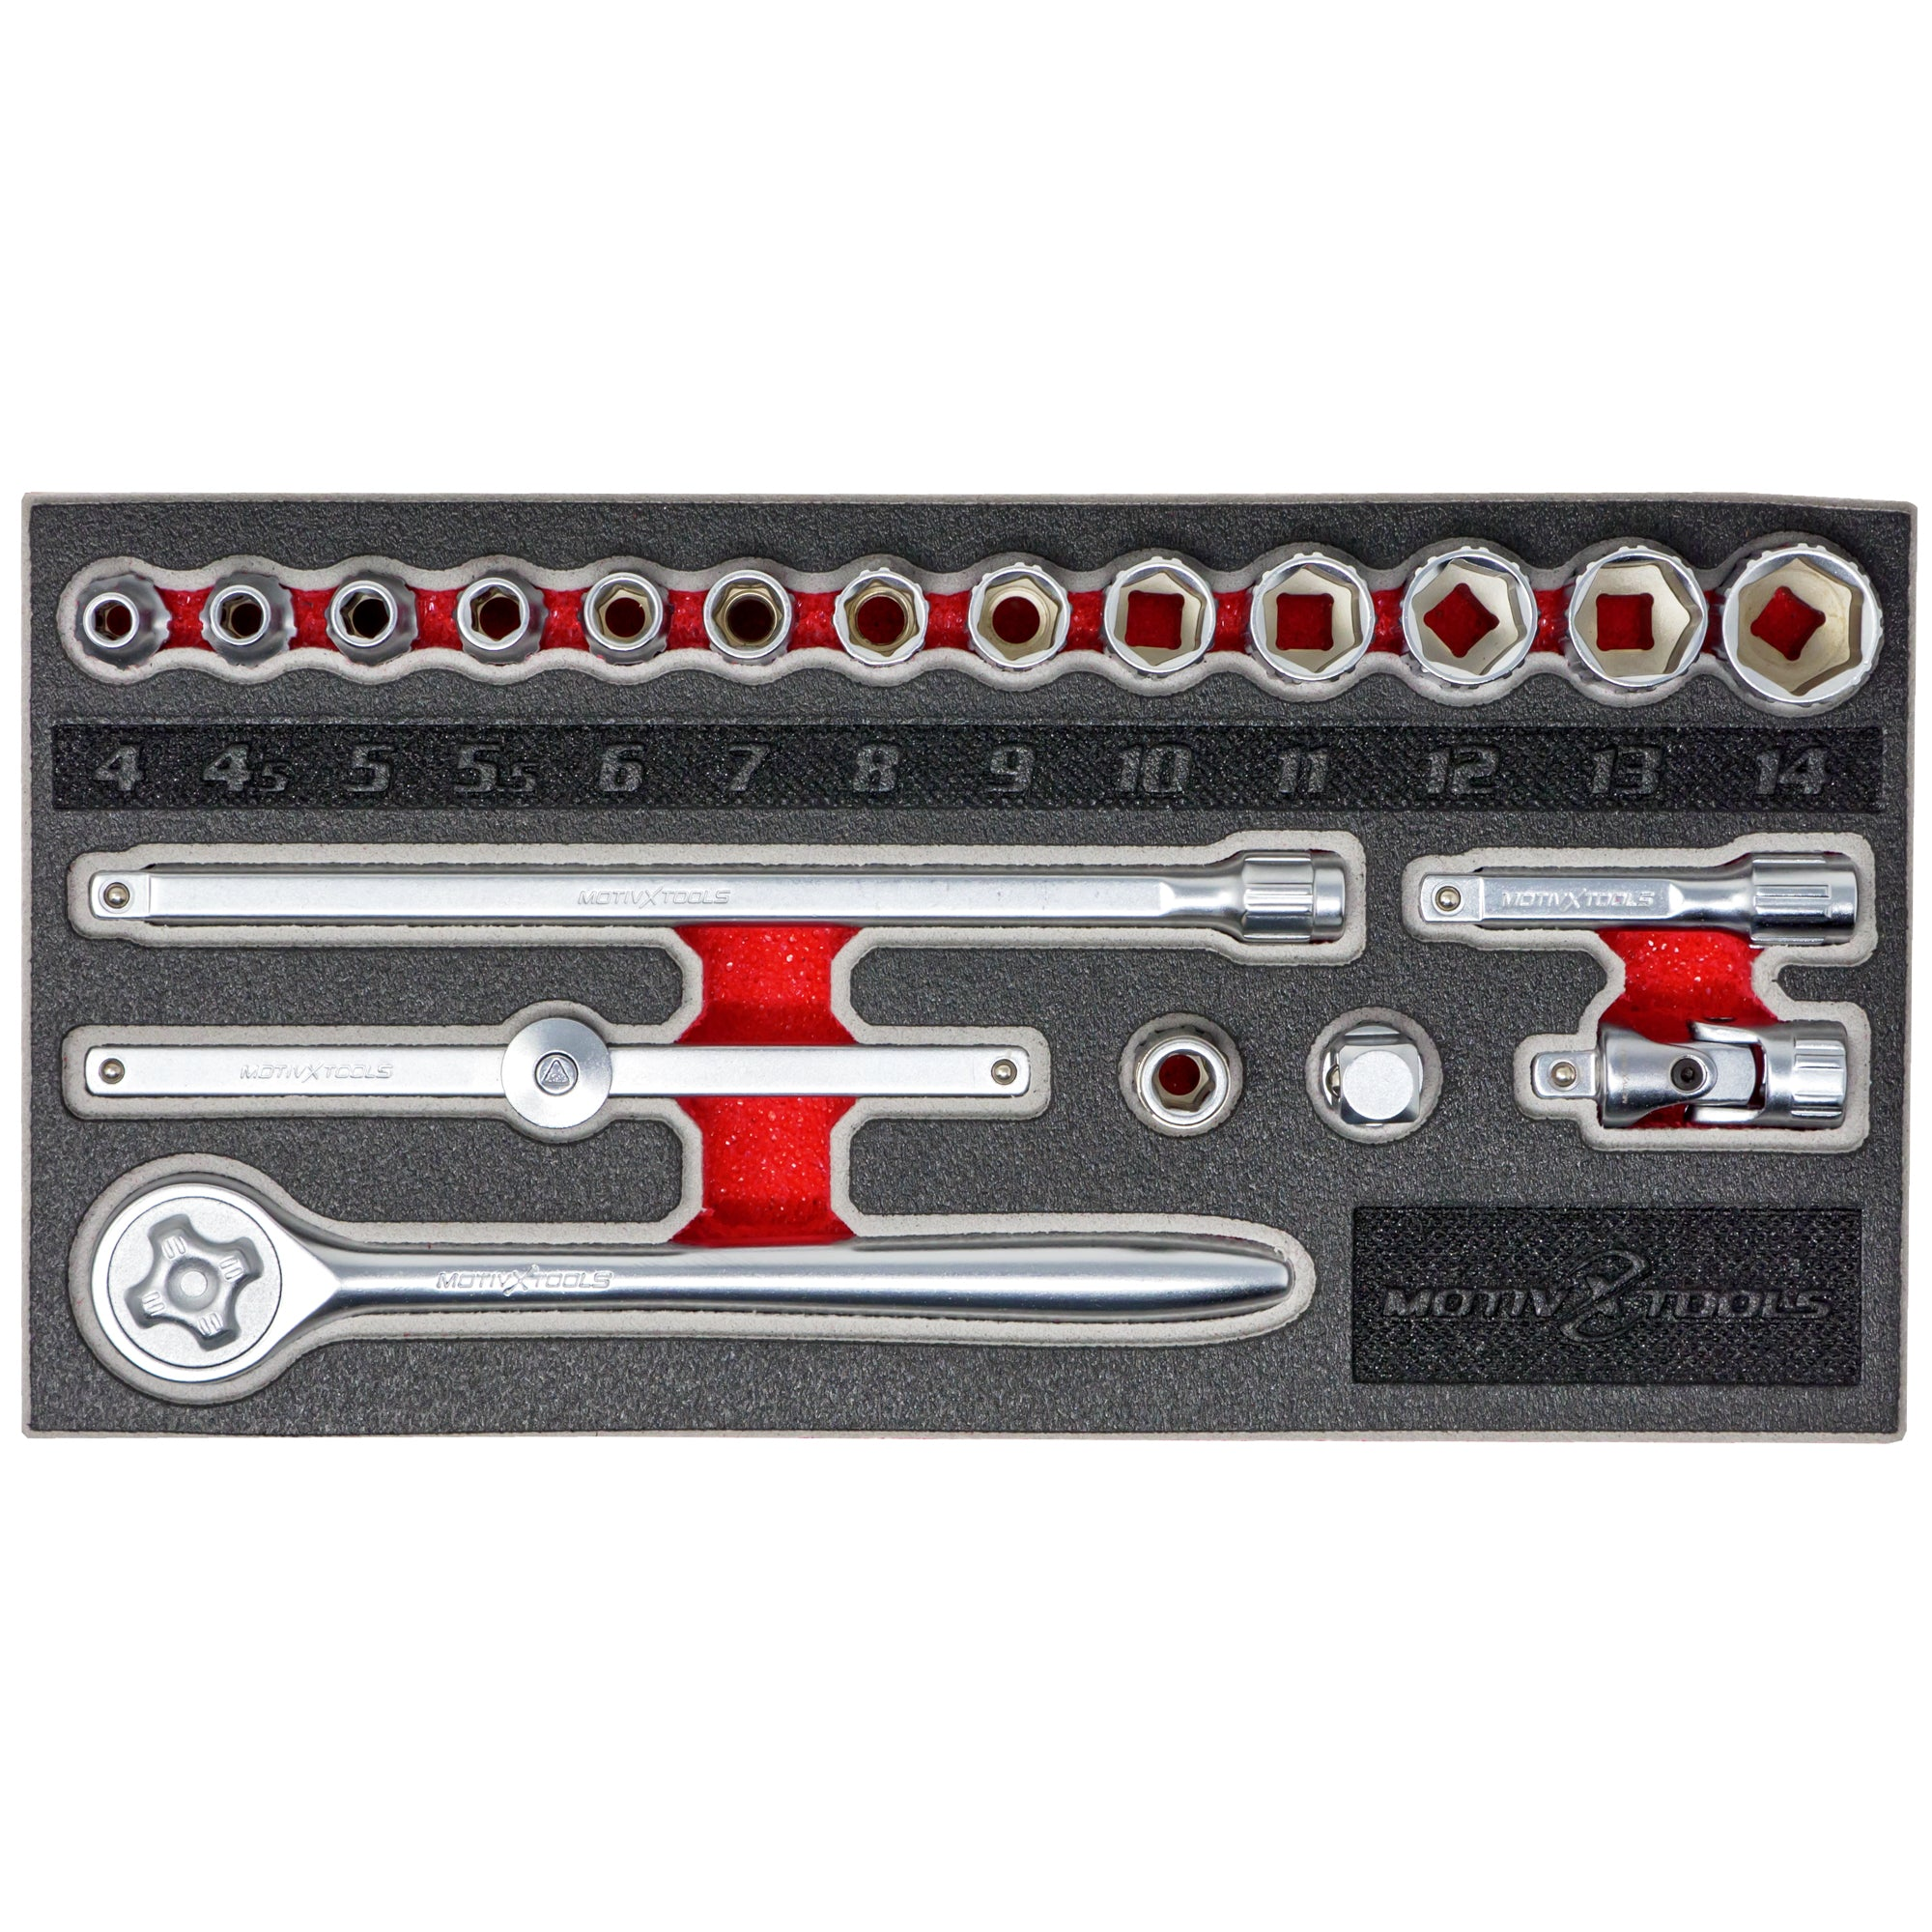 "1/4"" Drive Metric Socket And Ratchet Set - 20 Pc"